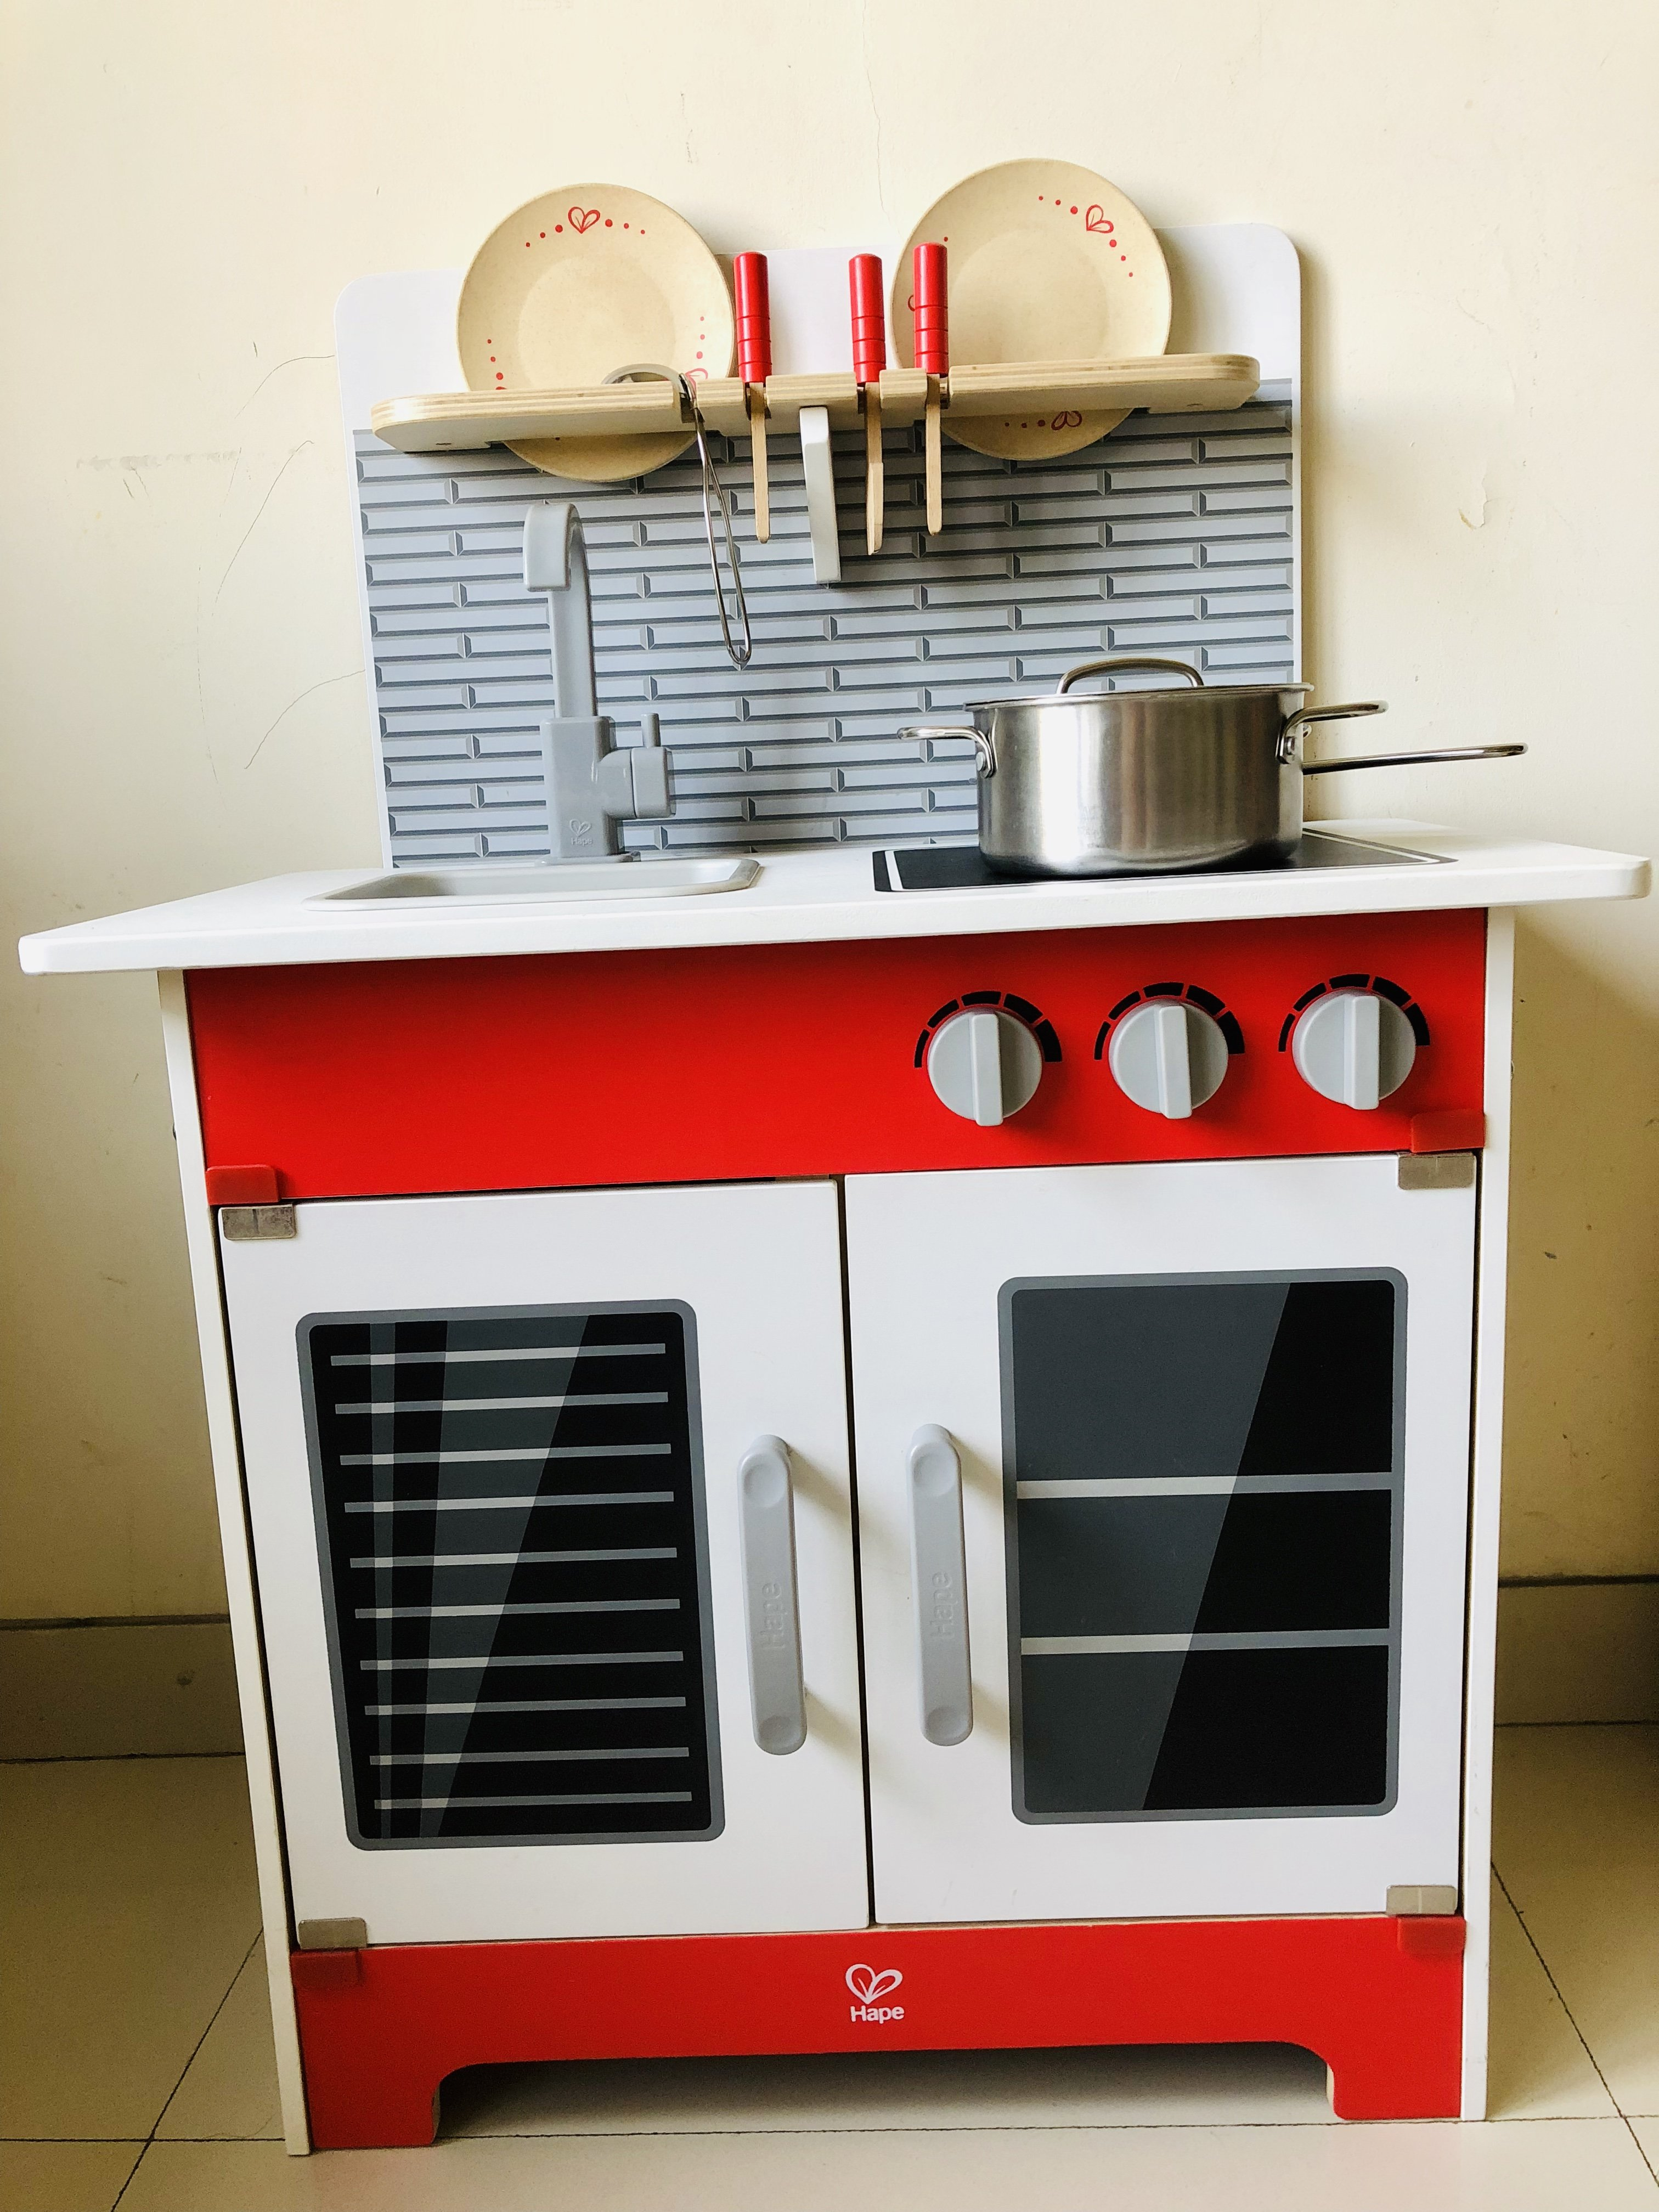 Hape play kitchen set